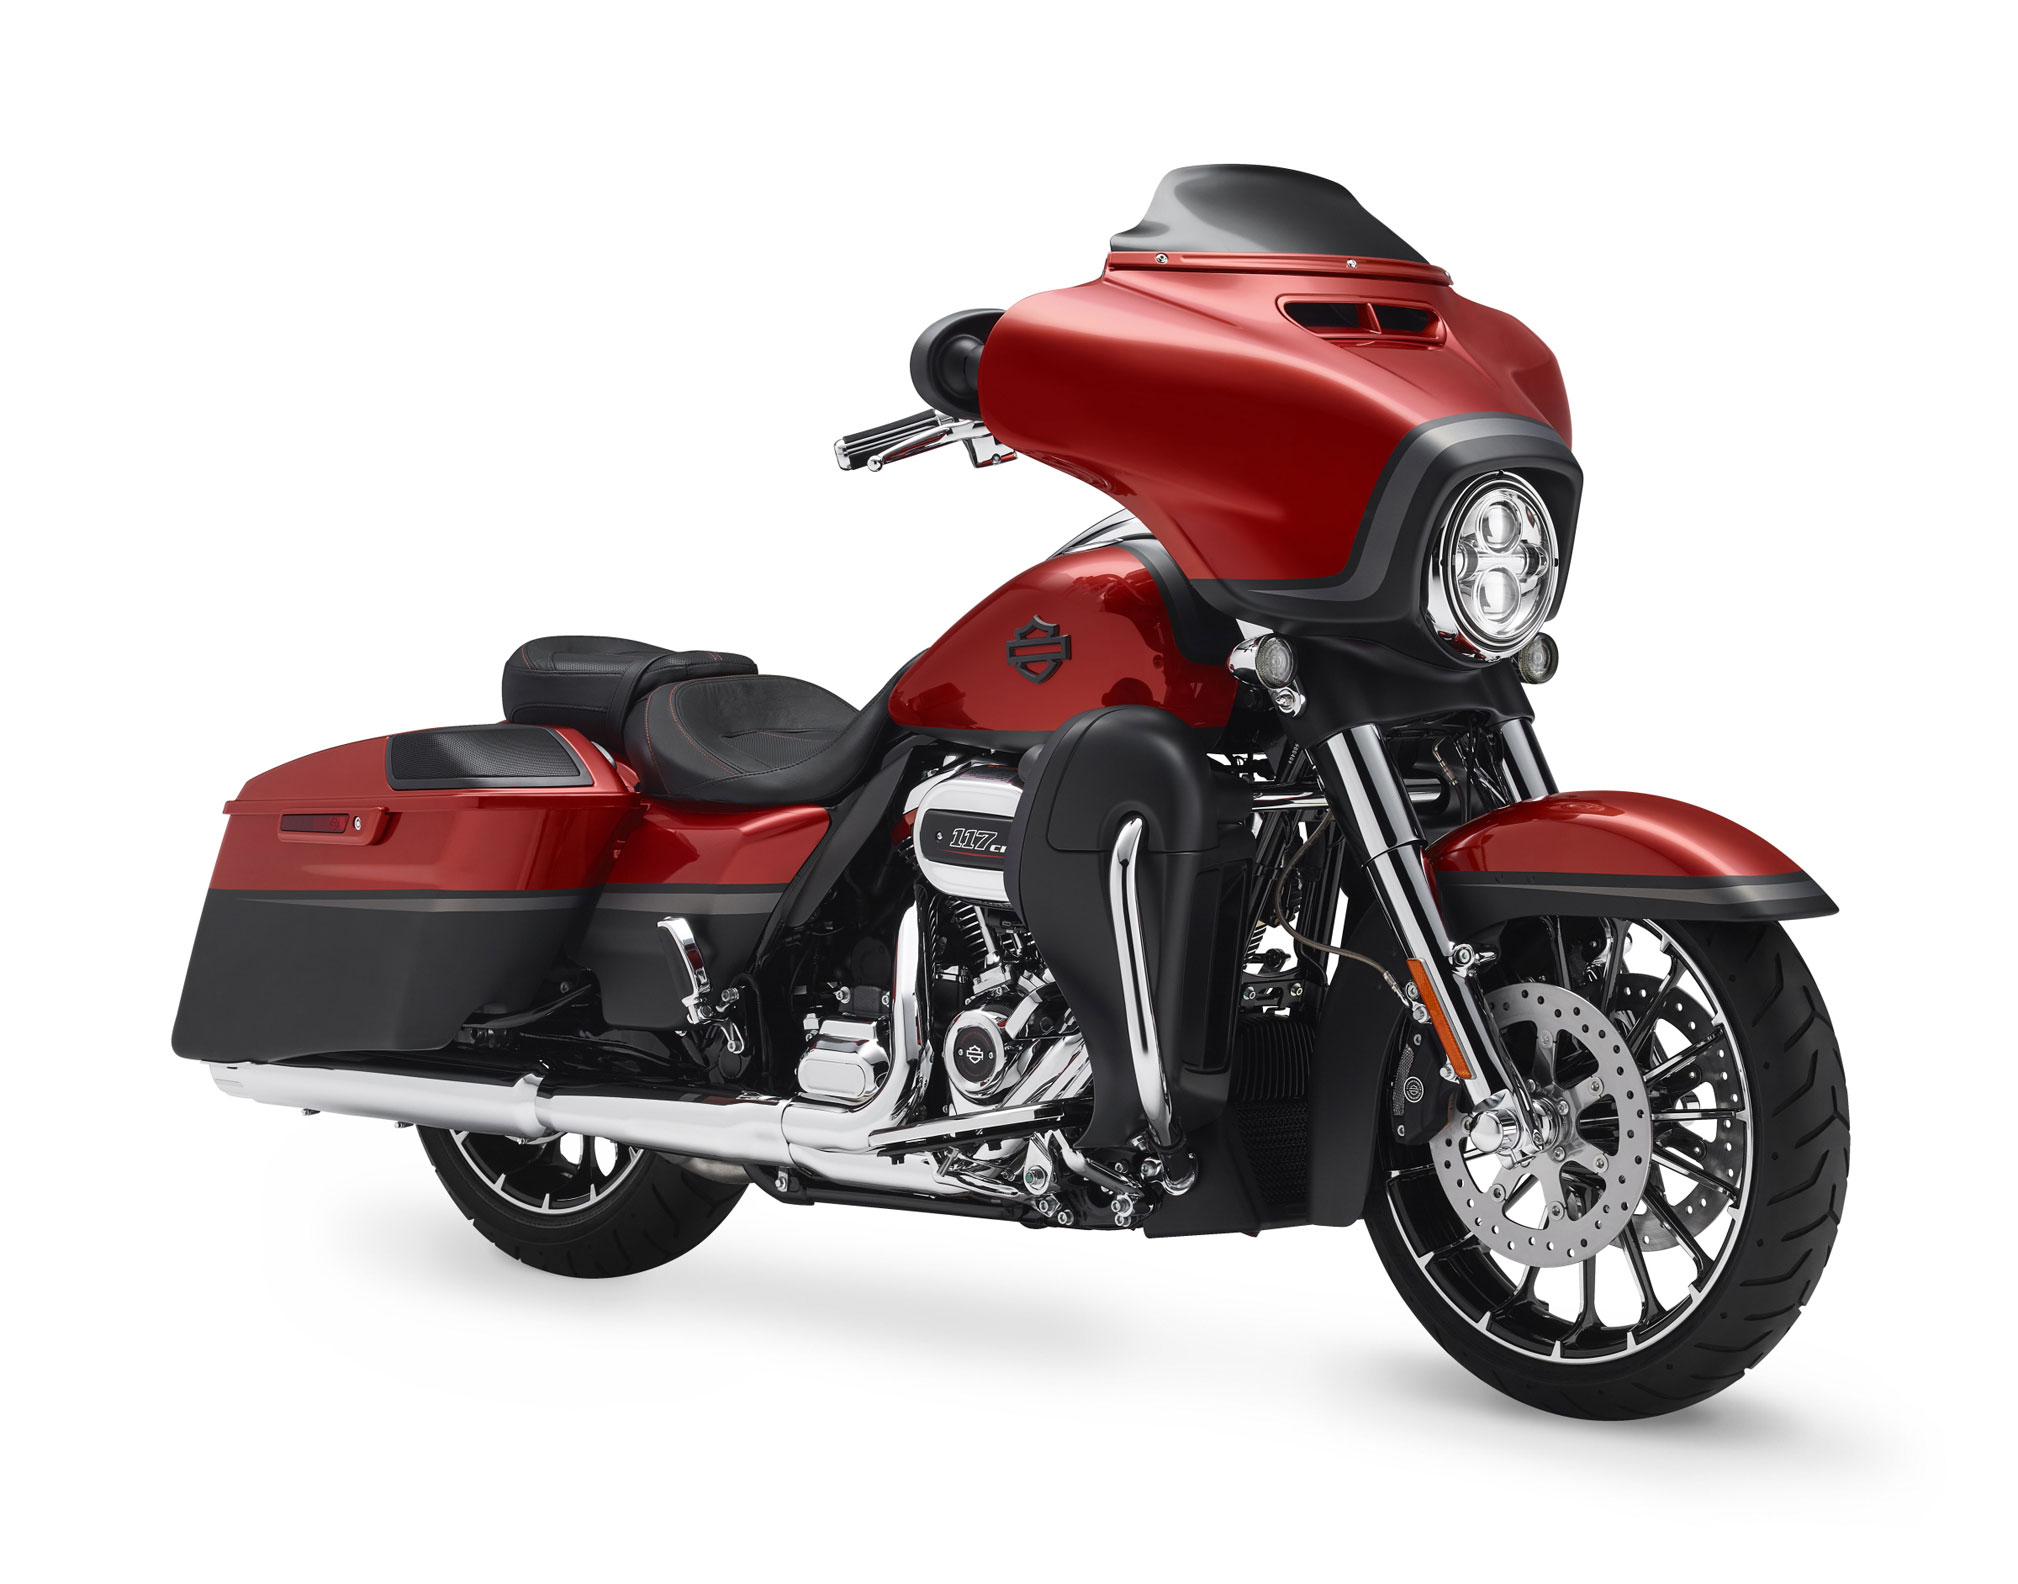 2018 harley davidson cvo street glide review totalmotorcycle. Black Bedroom Furniture Sets. Home Design Ideas